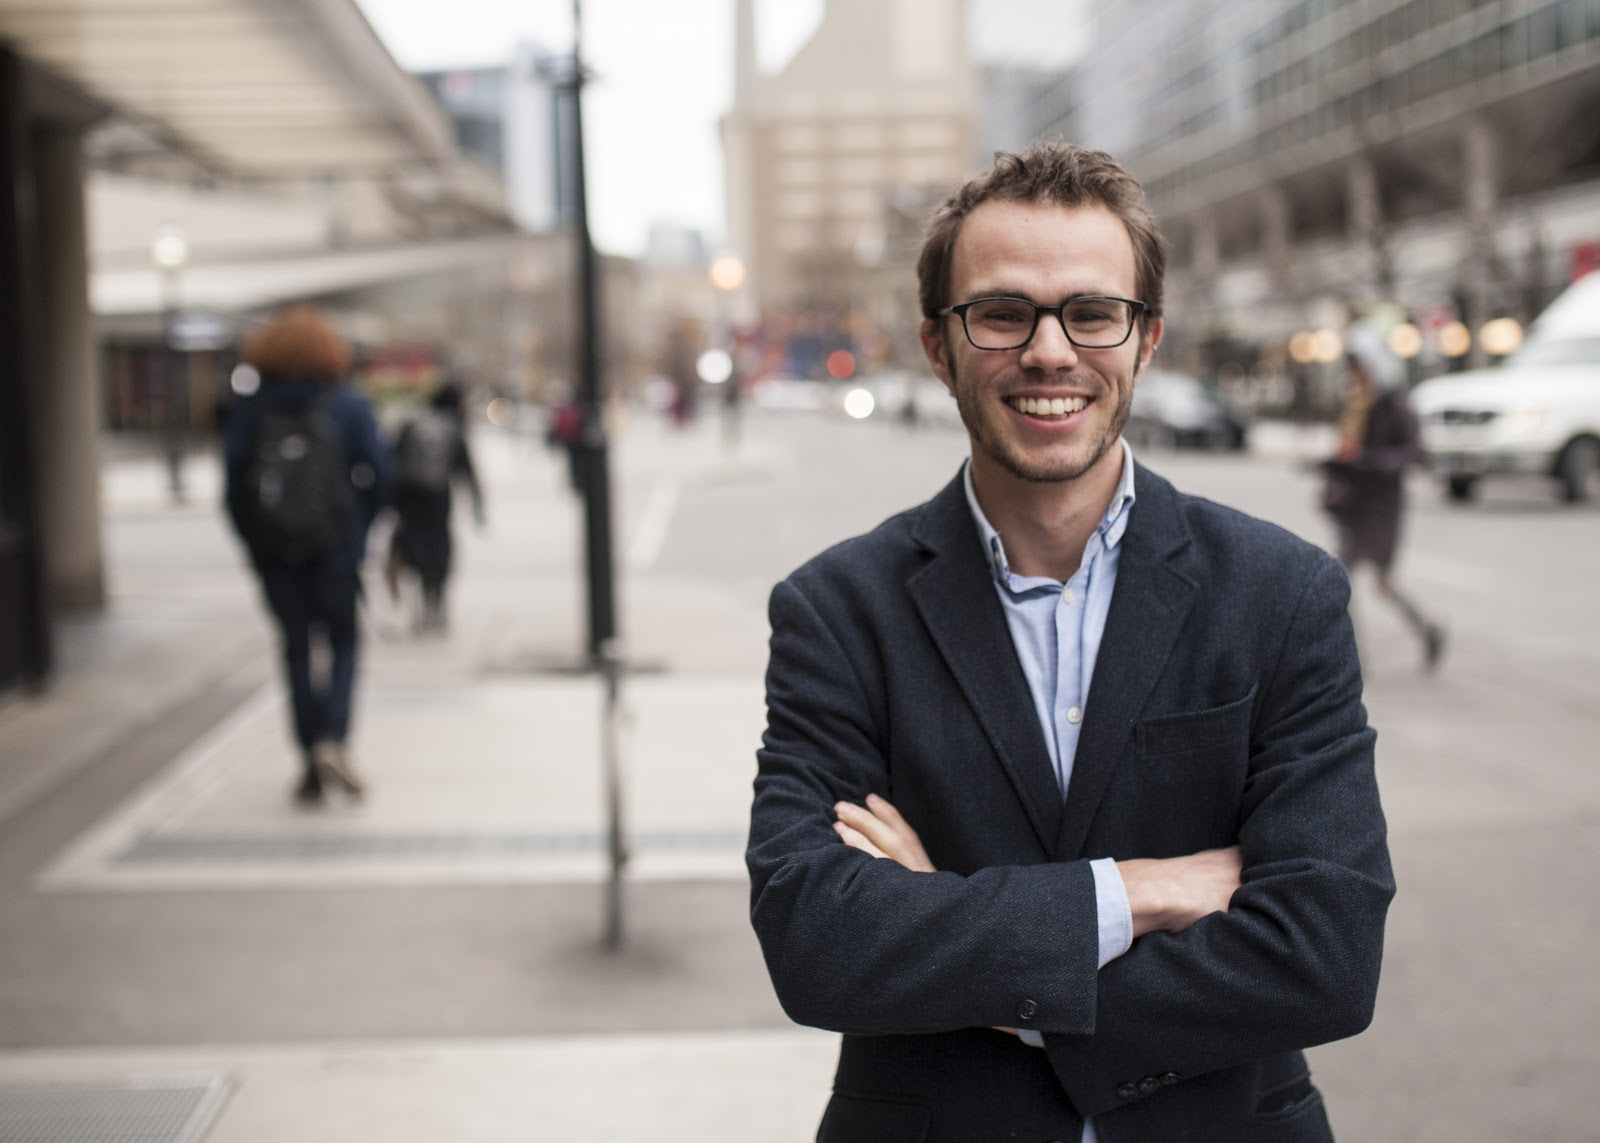 Clean Energy Entrepreneur shares how he turned his passion for the environment into a career to better the planet – with Co-founder of CoPower, David Berliner